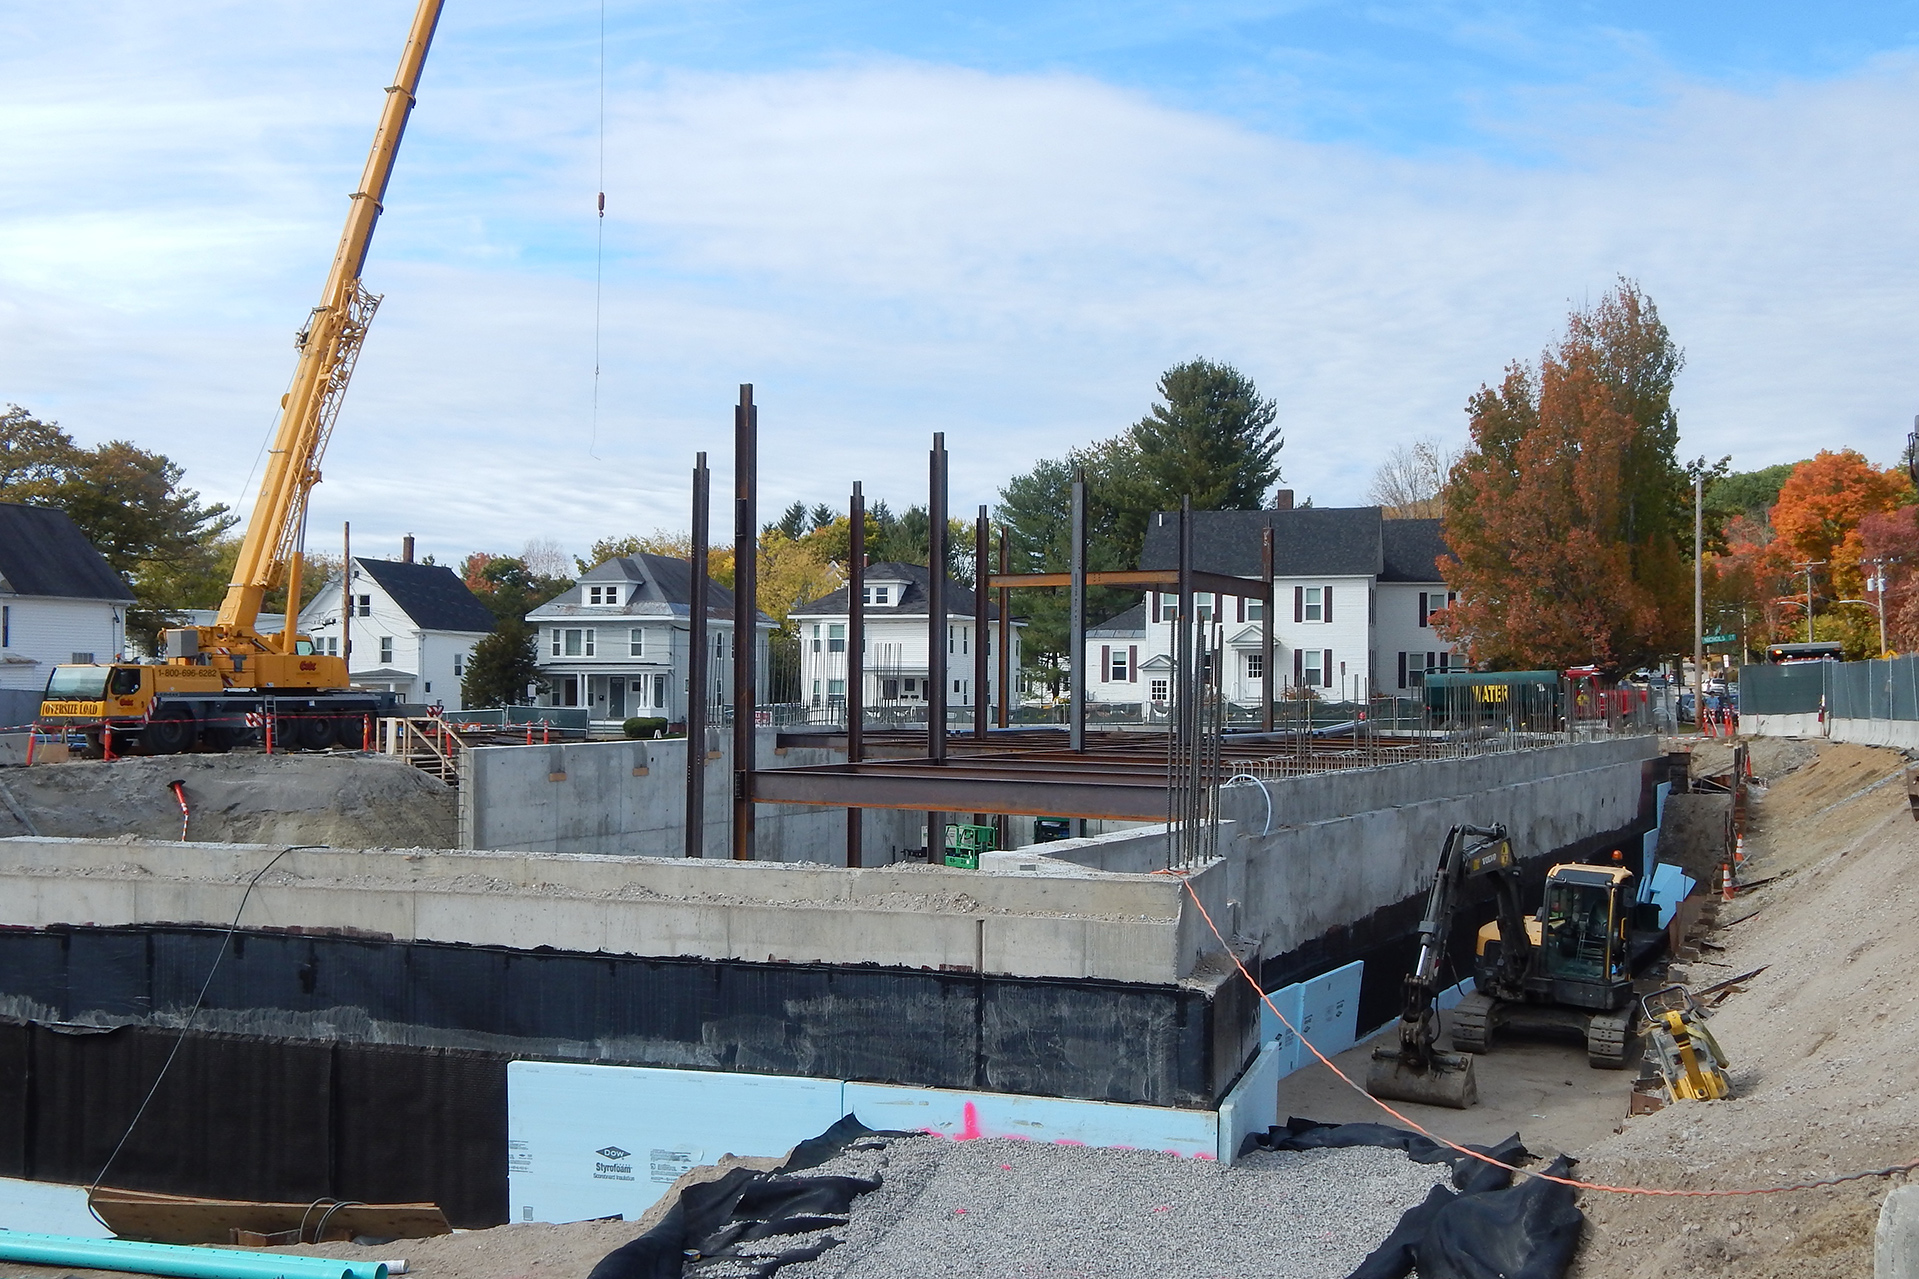 The state of steel at the Bonney Science Center on Oct. 11, 2019. At left, note the gap in the foundation wall where the areaway will be built. At right, note the wide trench and exposed foundation: This area will be backfilled once the first-floor slab is placed, which will reinforce the foundation sufficient to withstand the external pressure from additional tons of dirt. (Doug Hubley/Bates College)